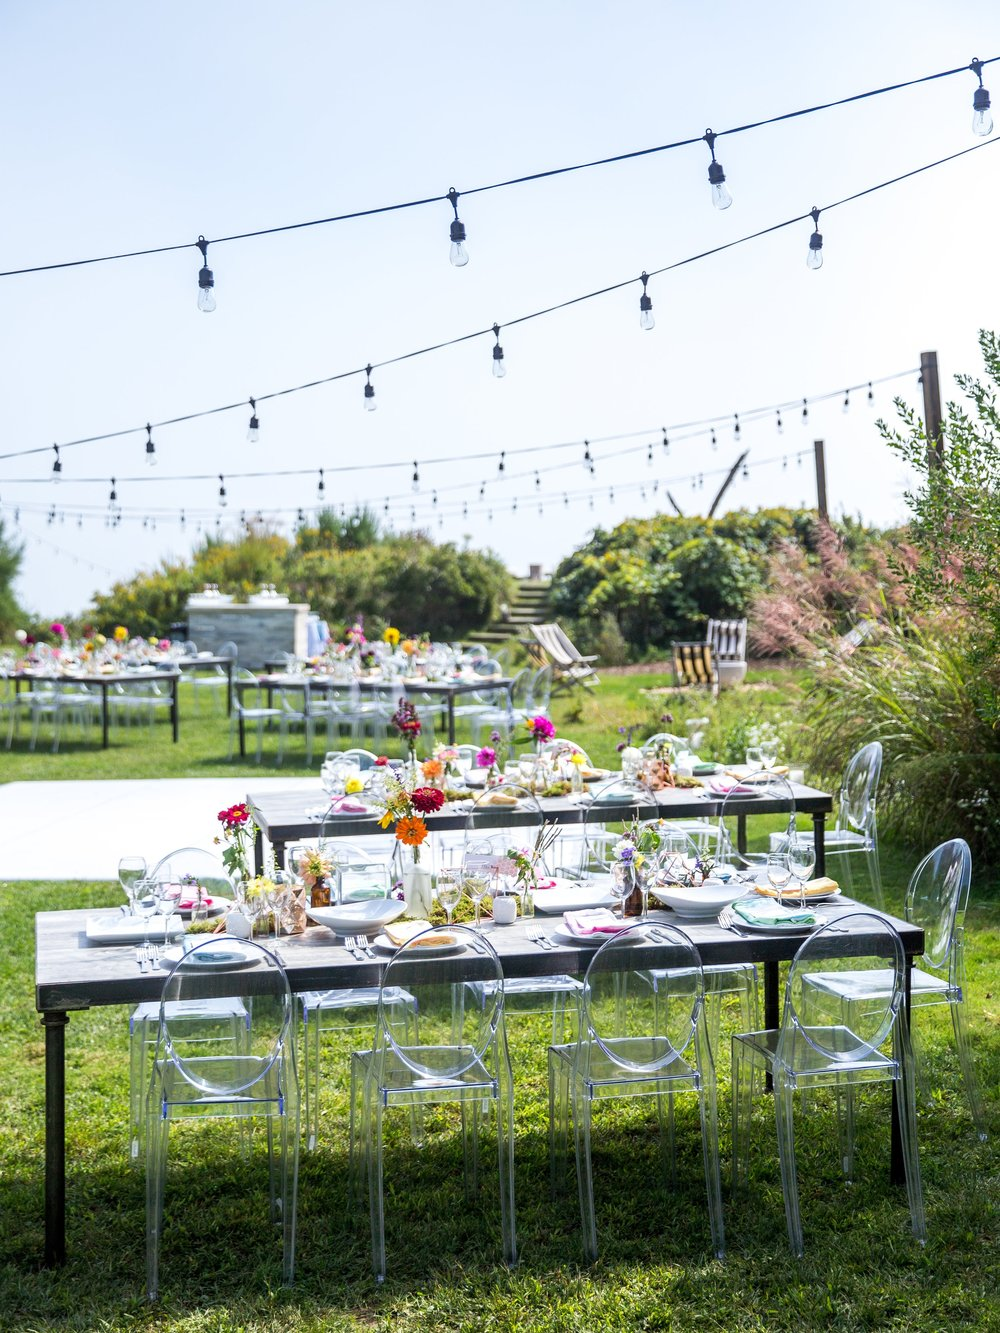 Partial Planning & Design Direction - So you have a date, a venue, a caterer and an idea of the celebration you're trying to achieve but would like guidance to bring it to life and design recommendations for additional vendors to make sure it's cohesive? Tall & Small Events can provide partial vendor recommendations, a custom planning calendar checklist and be a trusted and experienced resource to help answer questions as you make your way through the planning process. We then get involved 4-6 weeks out for the final Month-of portion to bring it all together seamlessly.Pricing is based on size, scale, location and scope of event. Contact us to set up an initial consultation call to discuss your needs for a custom proposal.Image by: Alexander Kusak